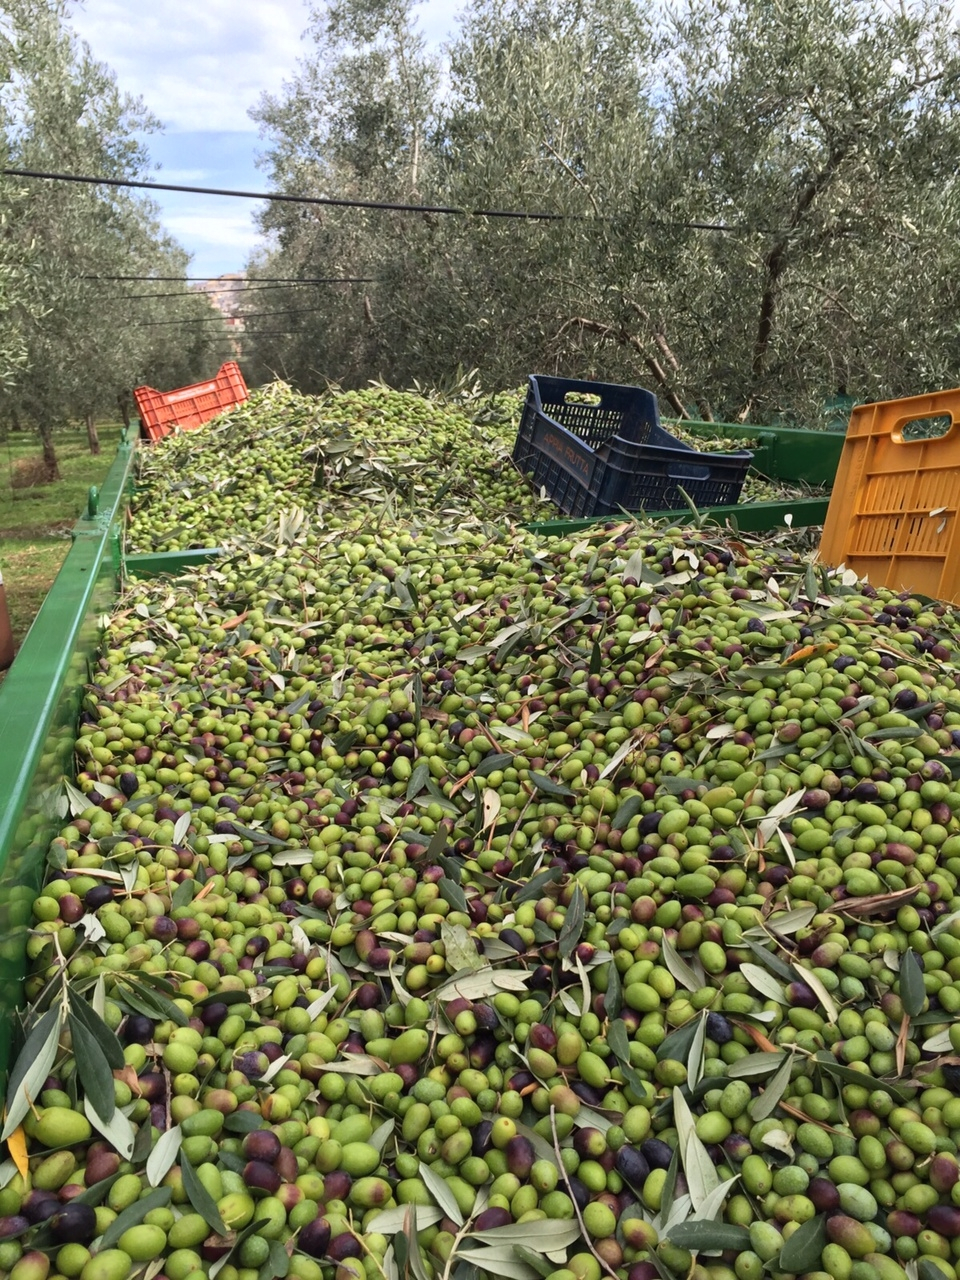 A bounty of olives